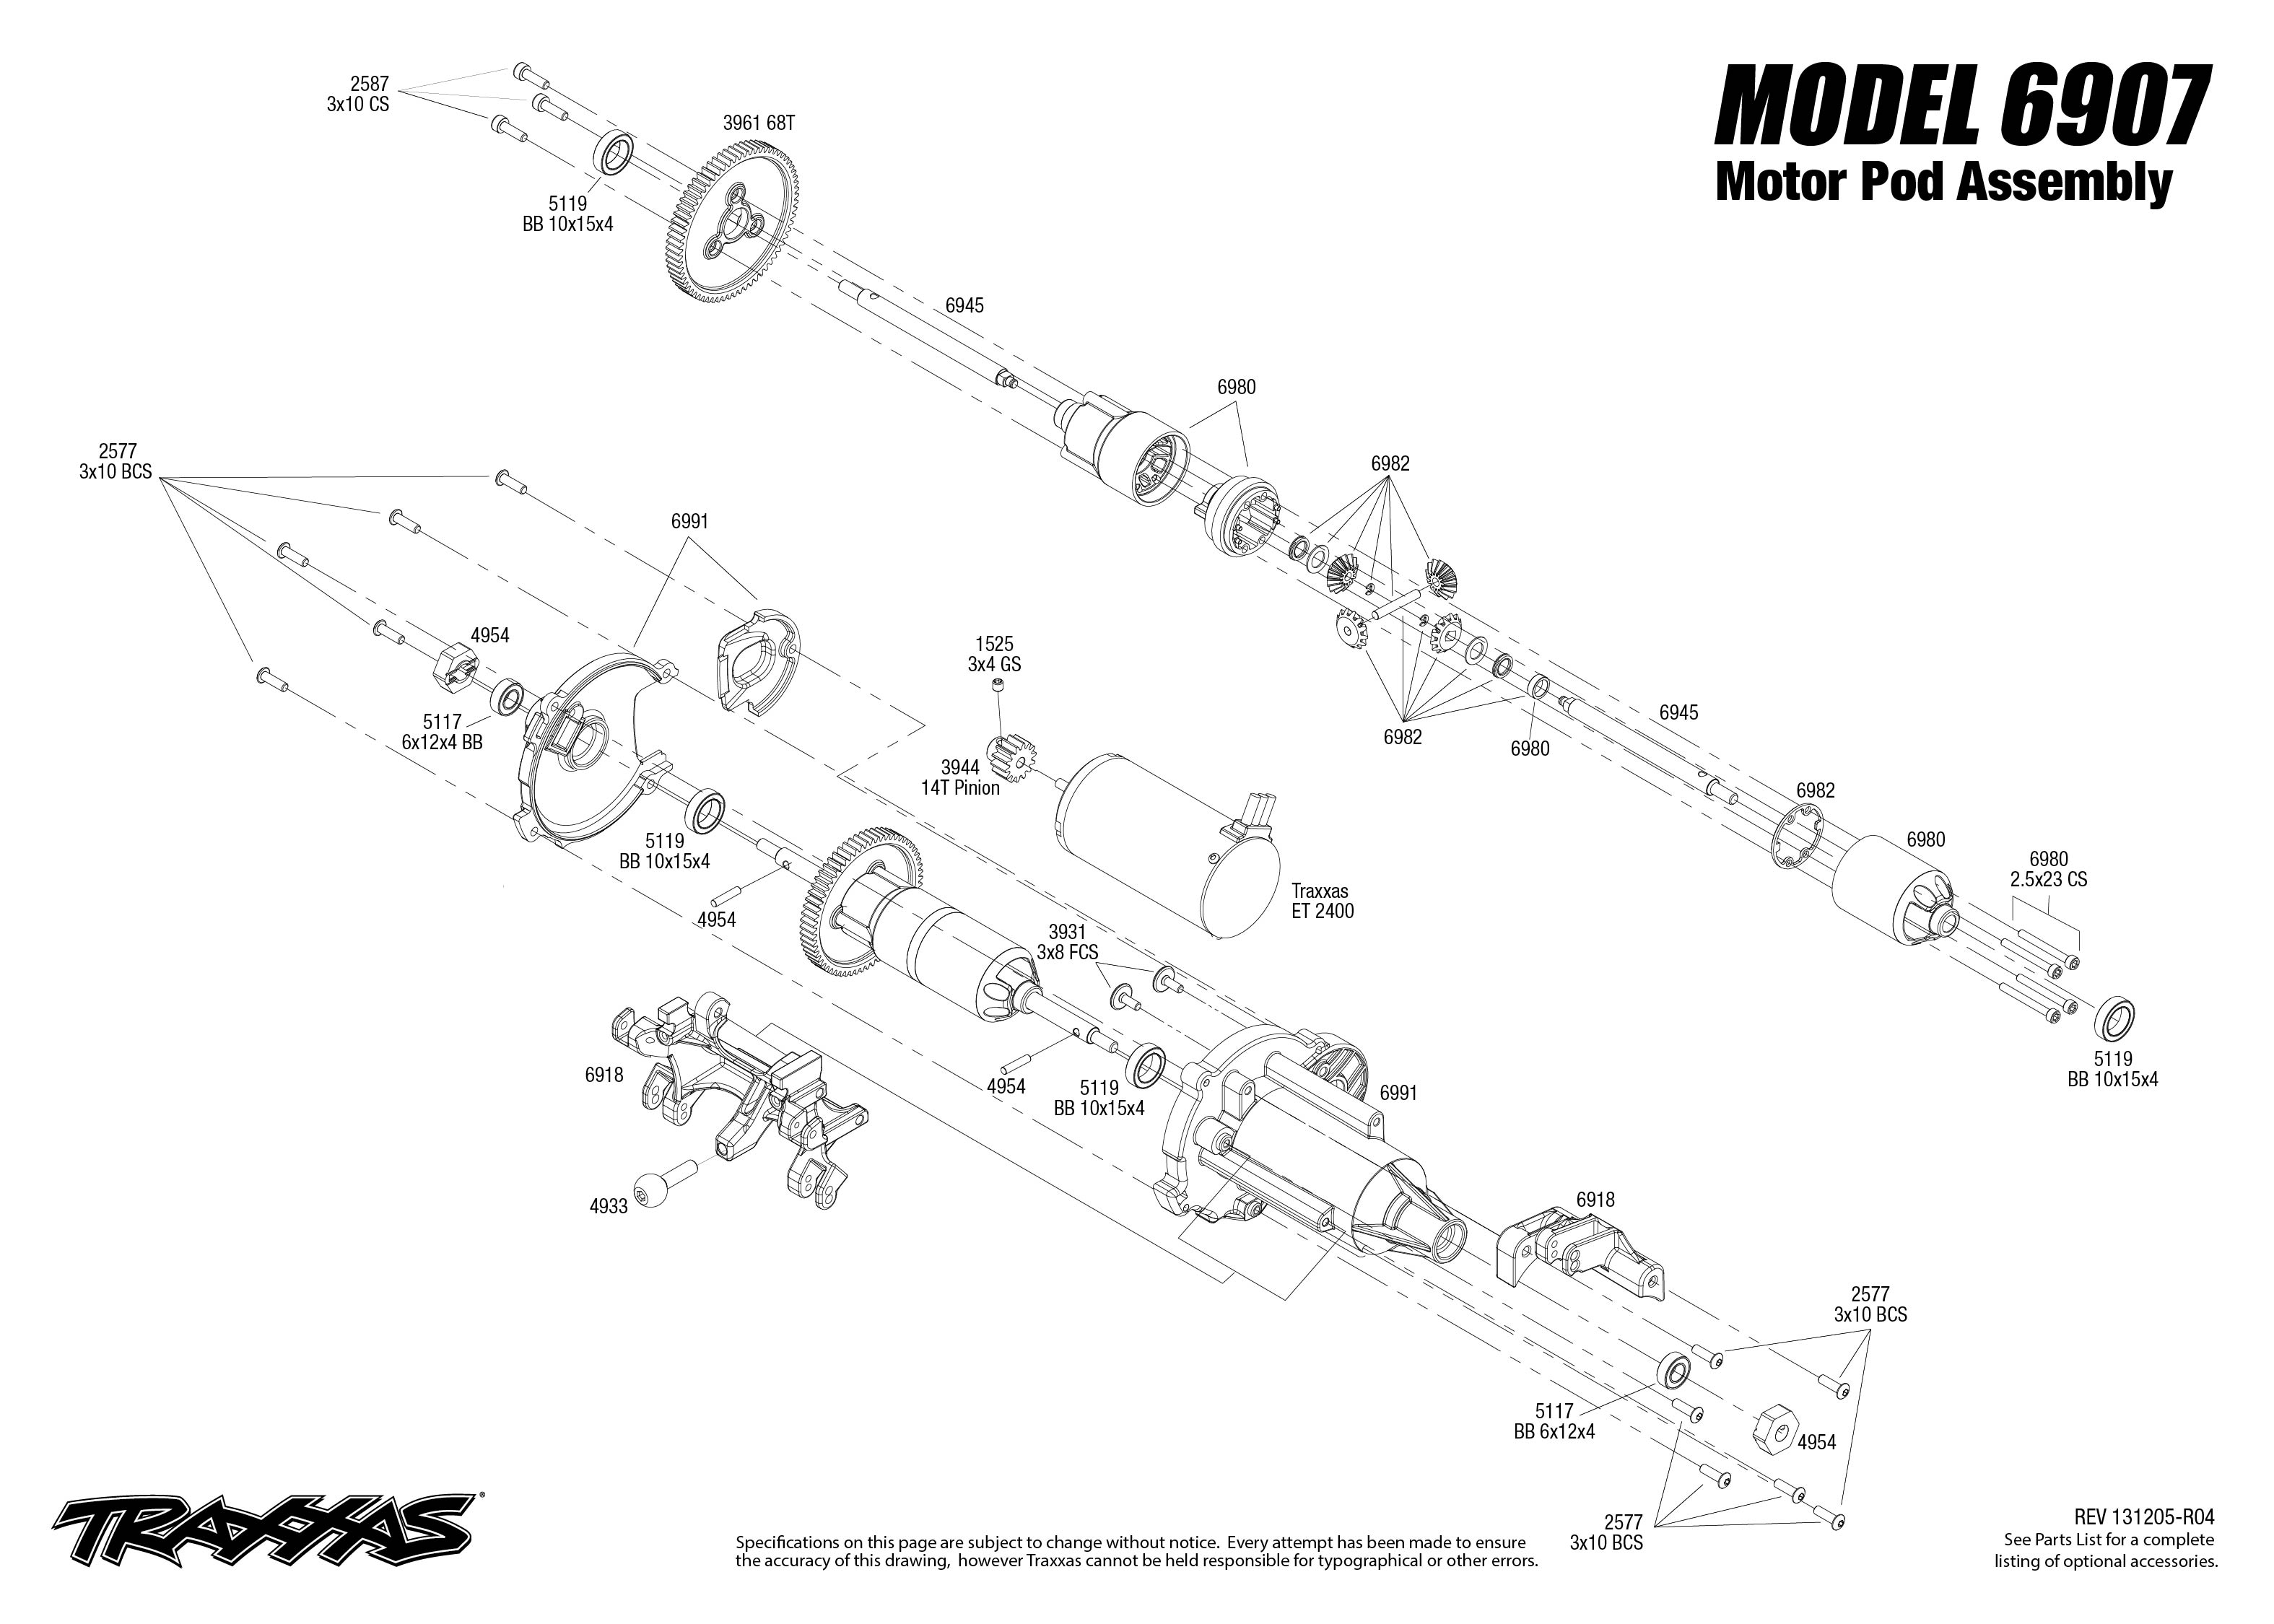 6907 Motor Pod Exploded View Funny Car